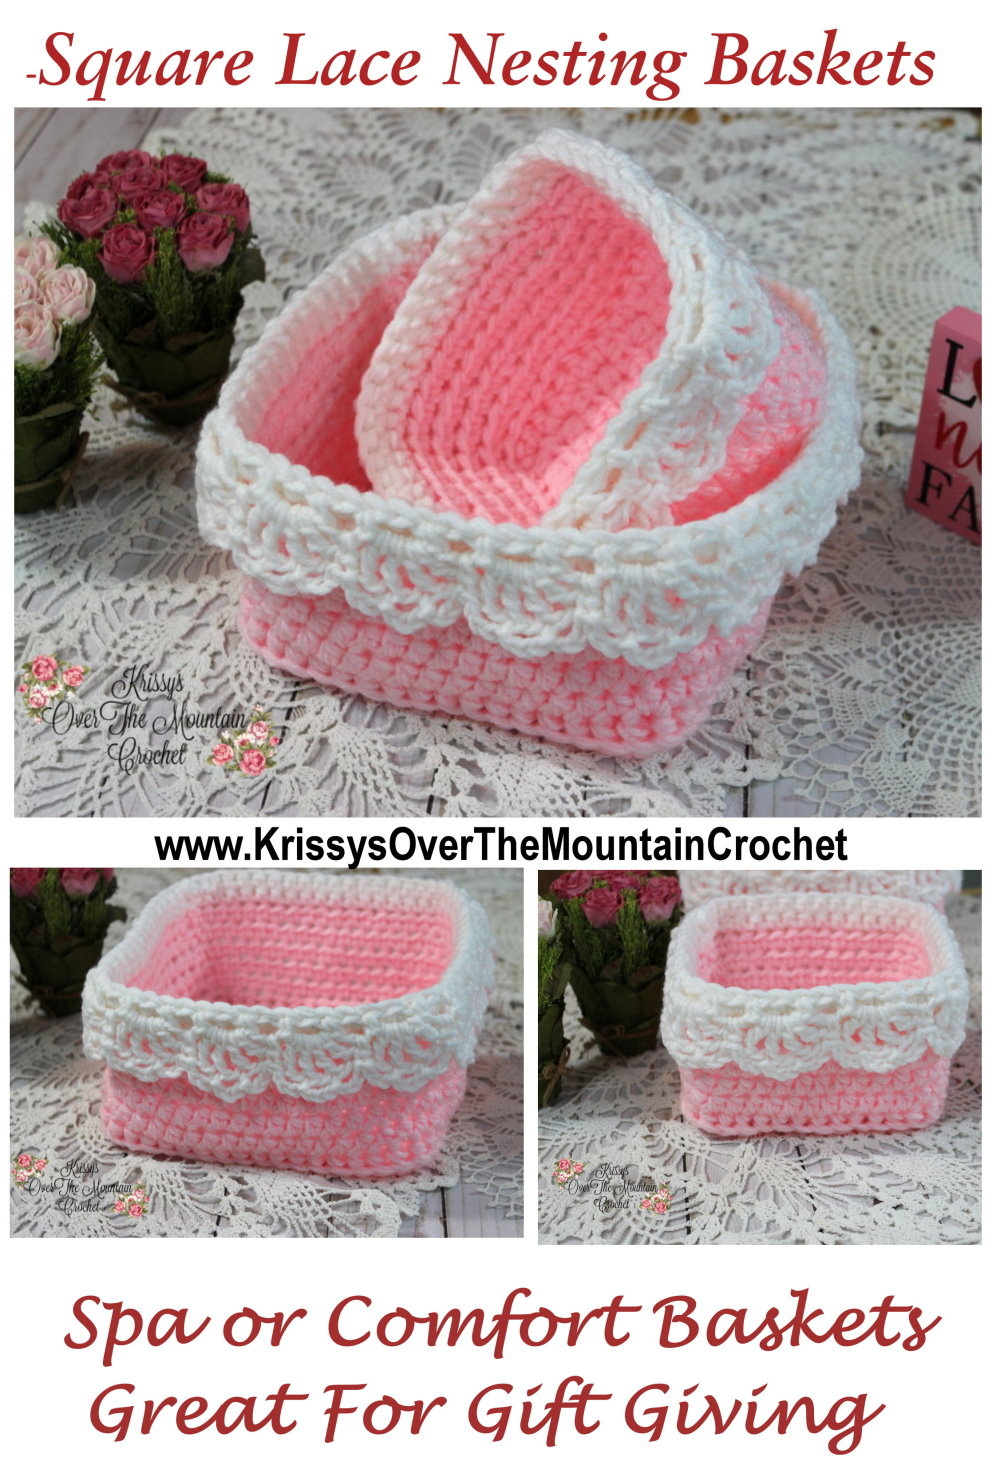 Lace nesting baskets can be quickly crocheted and ready to pack with items for special gift giving.